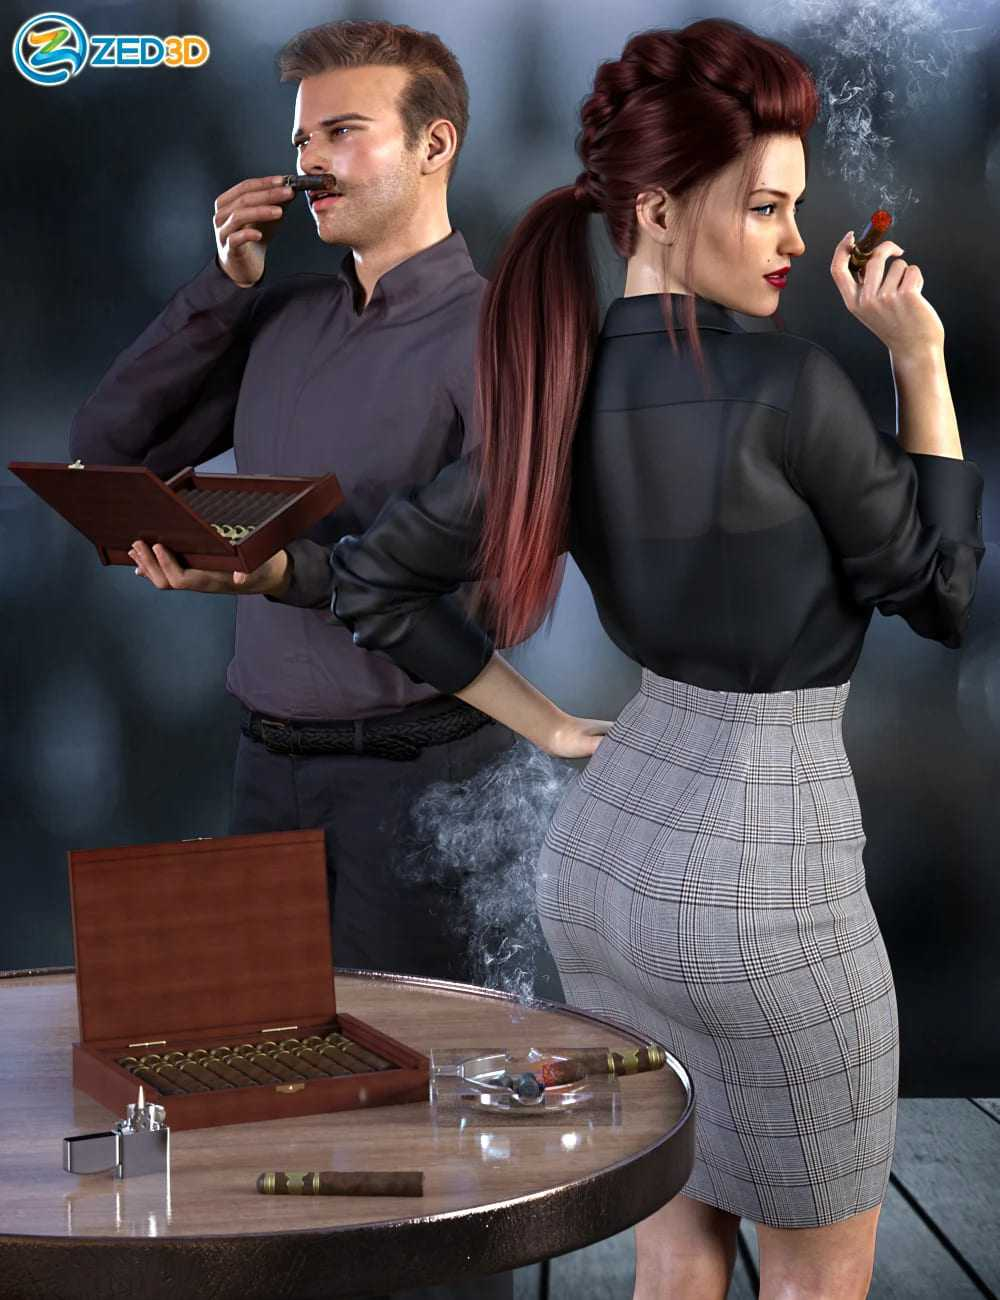 Z Smoke and Cigars Props and Poses for Genesis 8